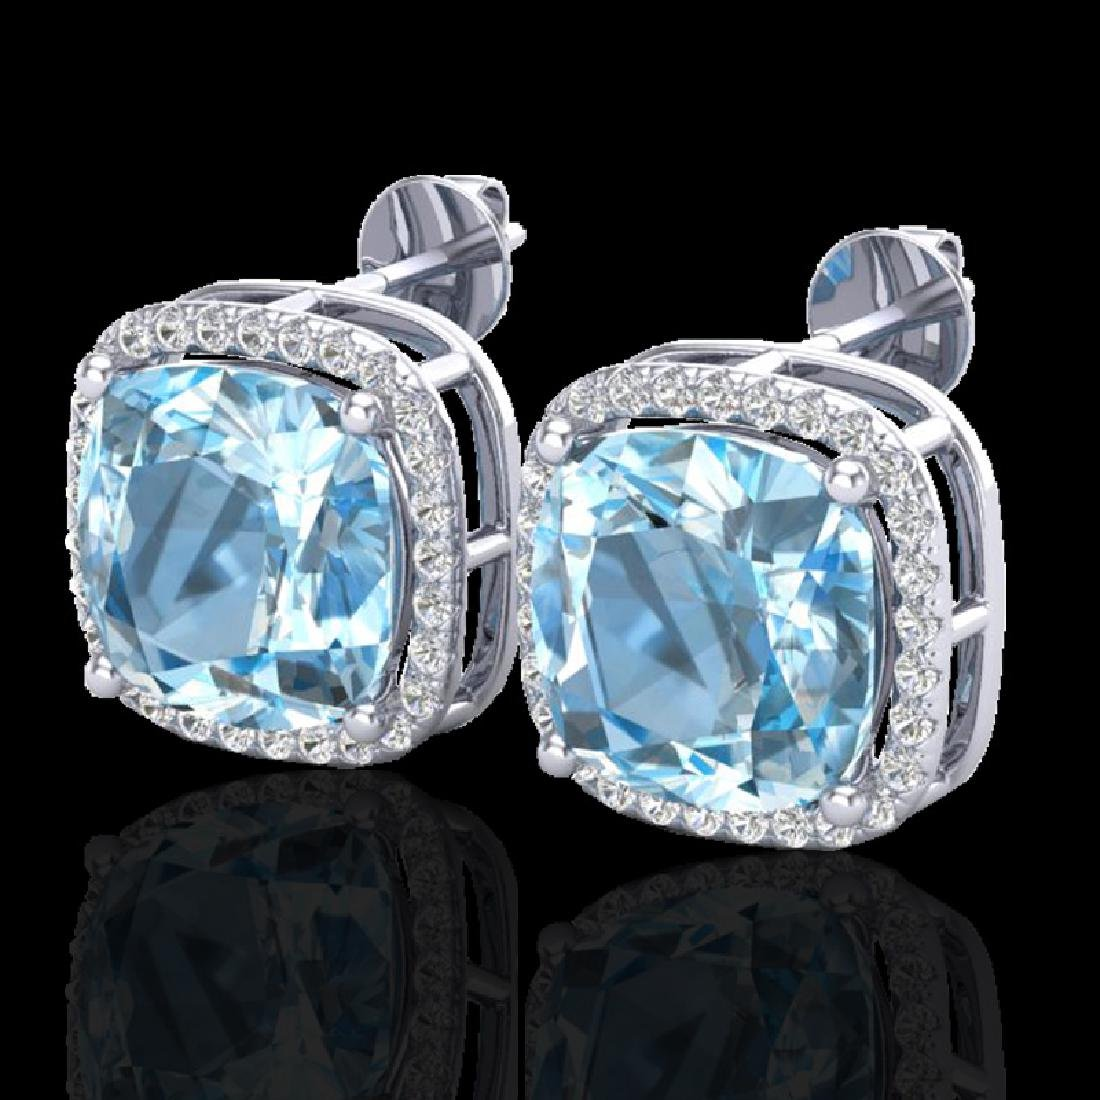 12 CTW Sky Blue Topaz & Pave Halo VS/SI Diamond